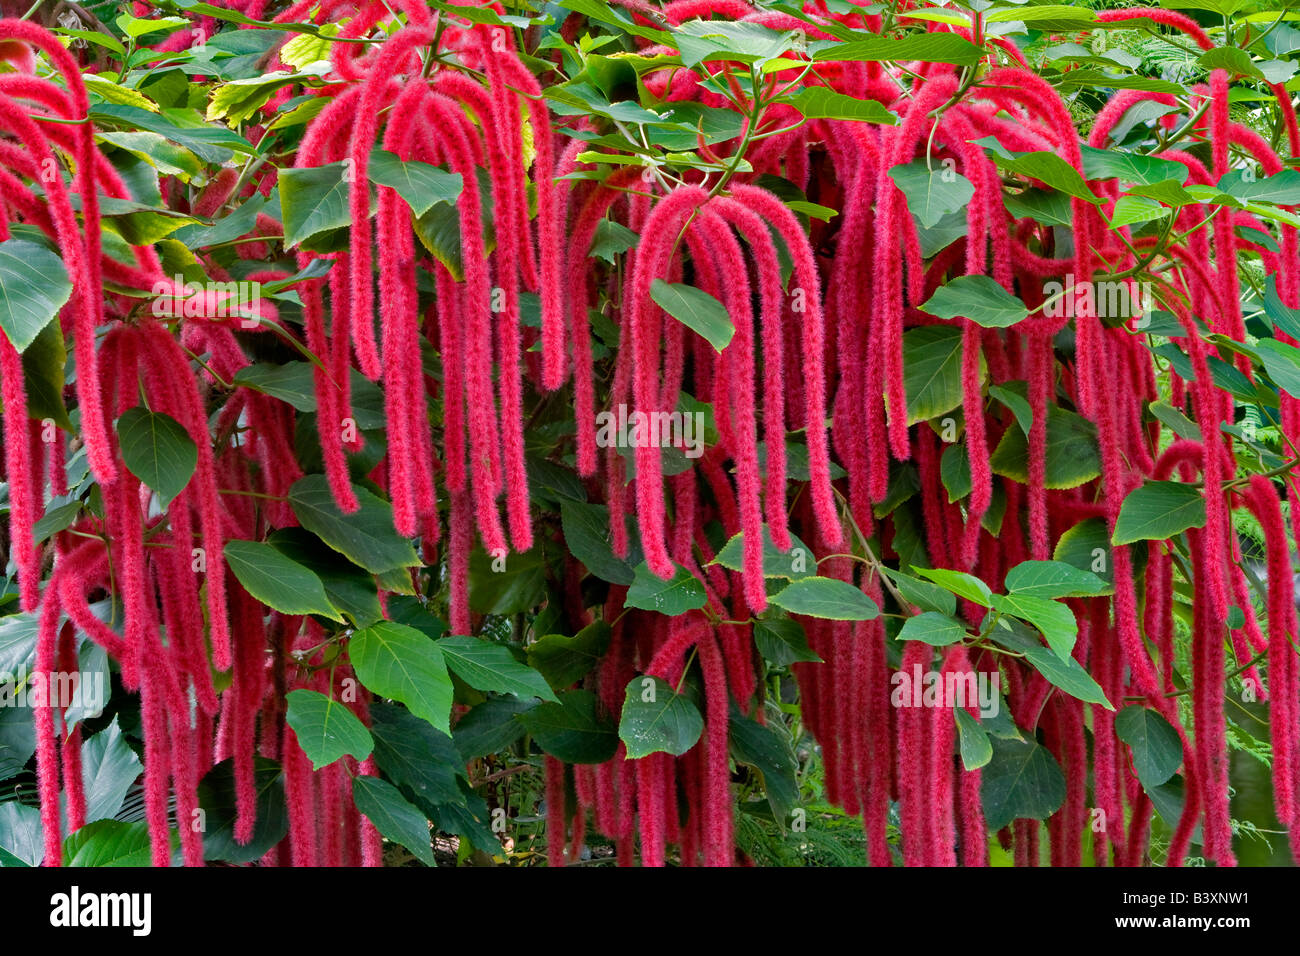 Red Chennile Flowers Victoria Butterfly Gardens Victoria B C Stock Photo Royalty Free Image